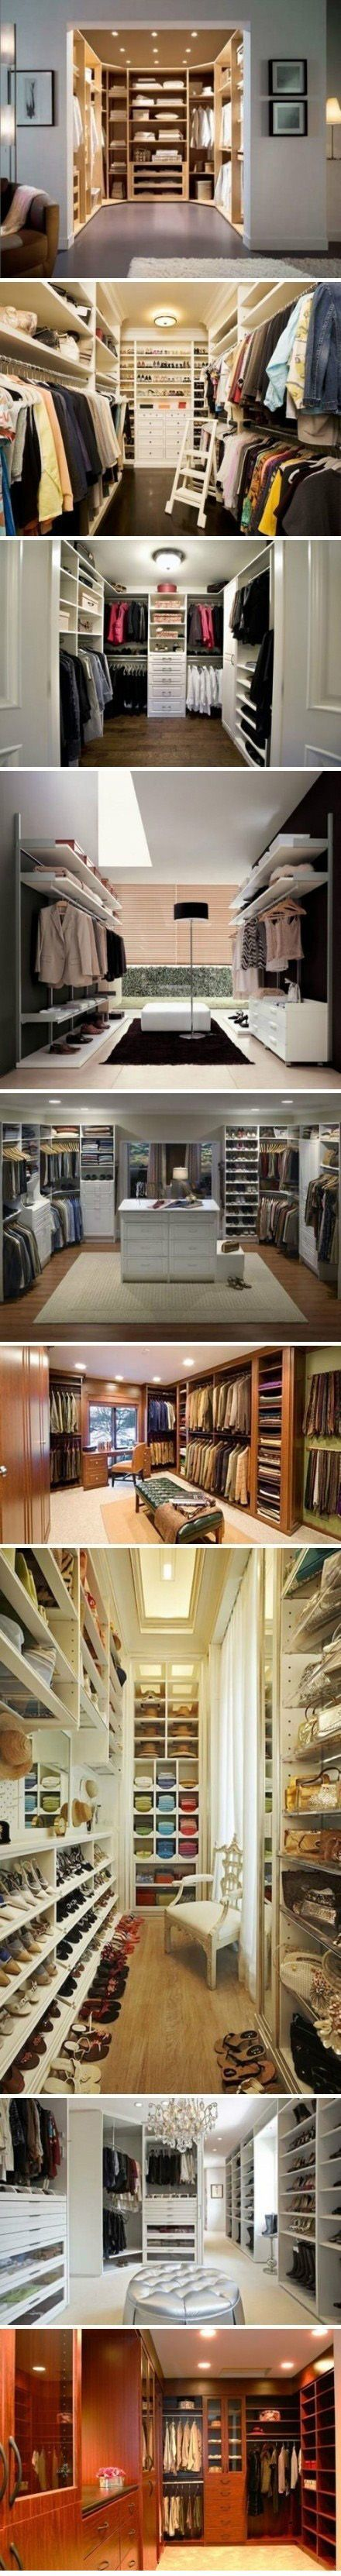 Along with a large kitchen and bathroom, my future home will also have a large clothing room (or two) :)